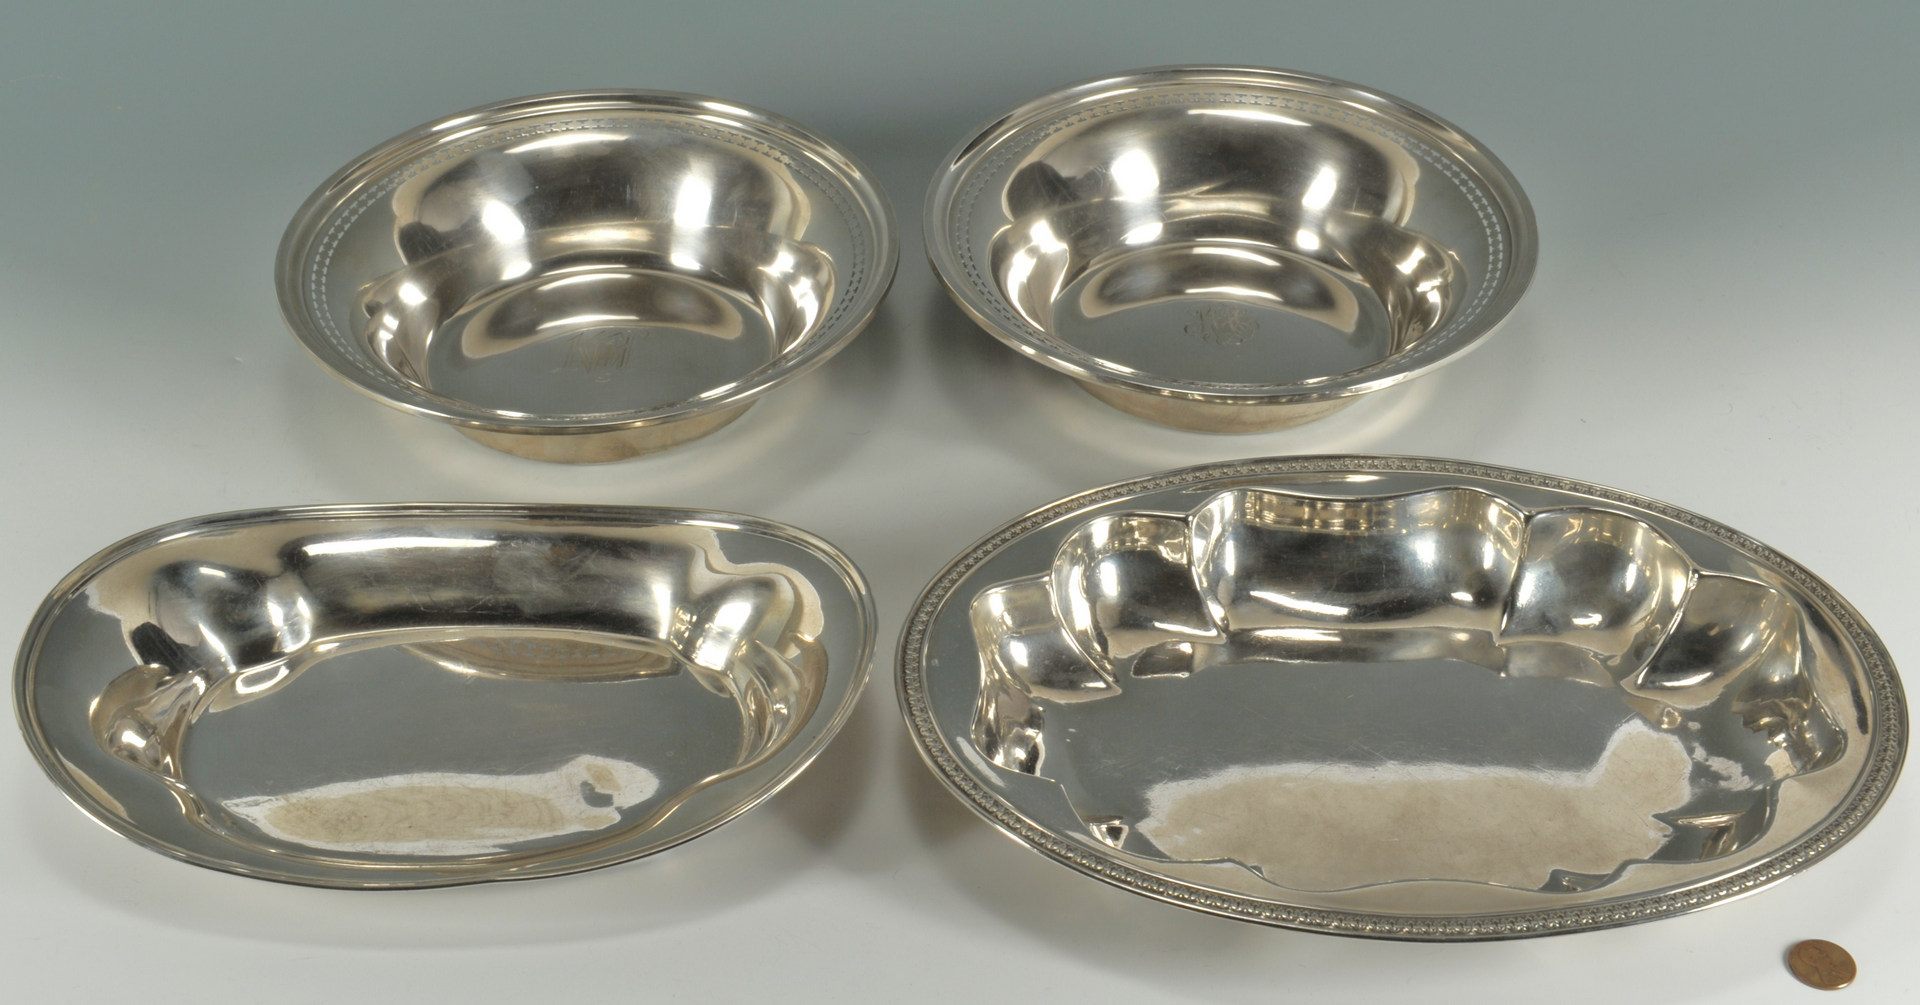 Lot 238: 4 pcs Sterling hollowware: bowls and bread trays